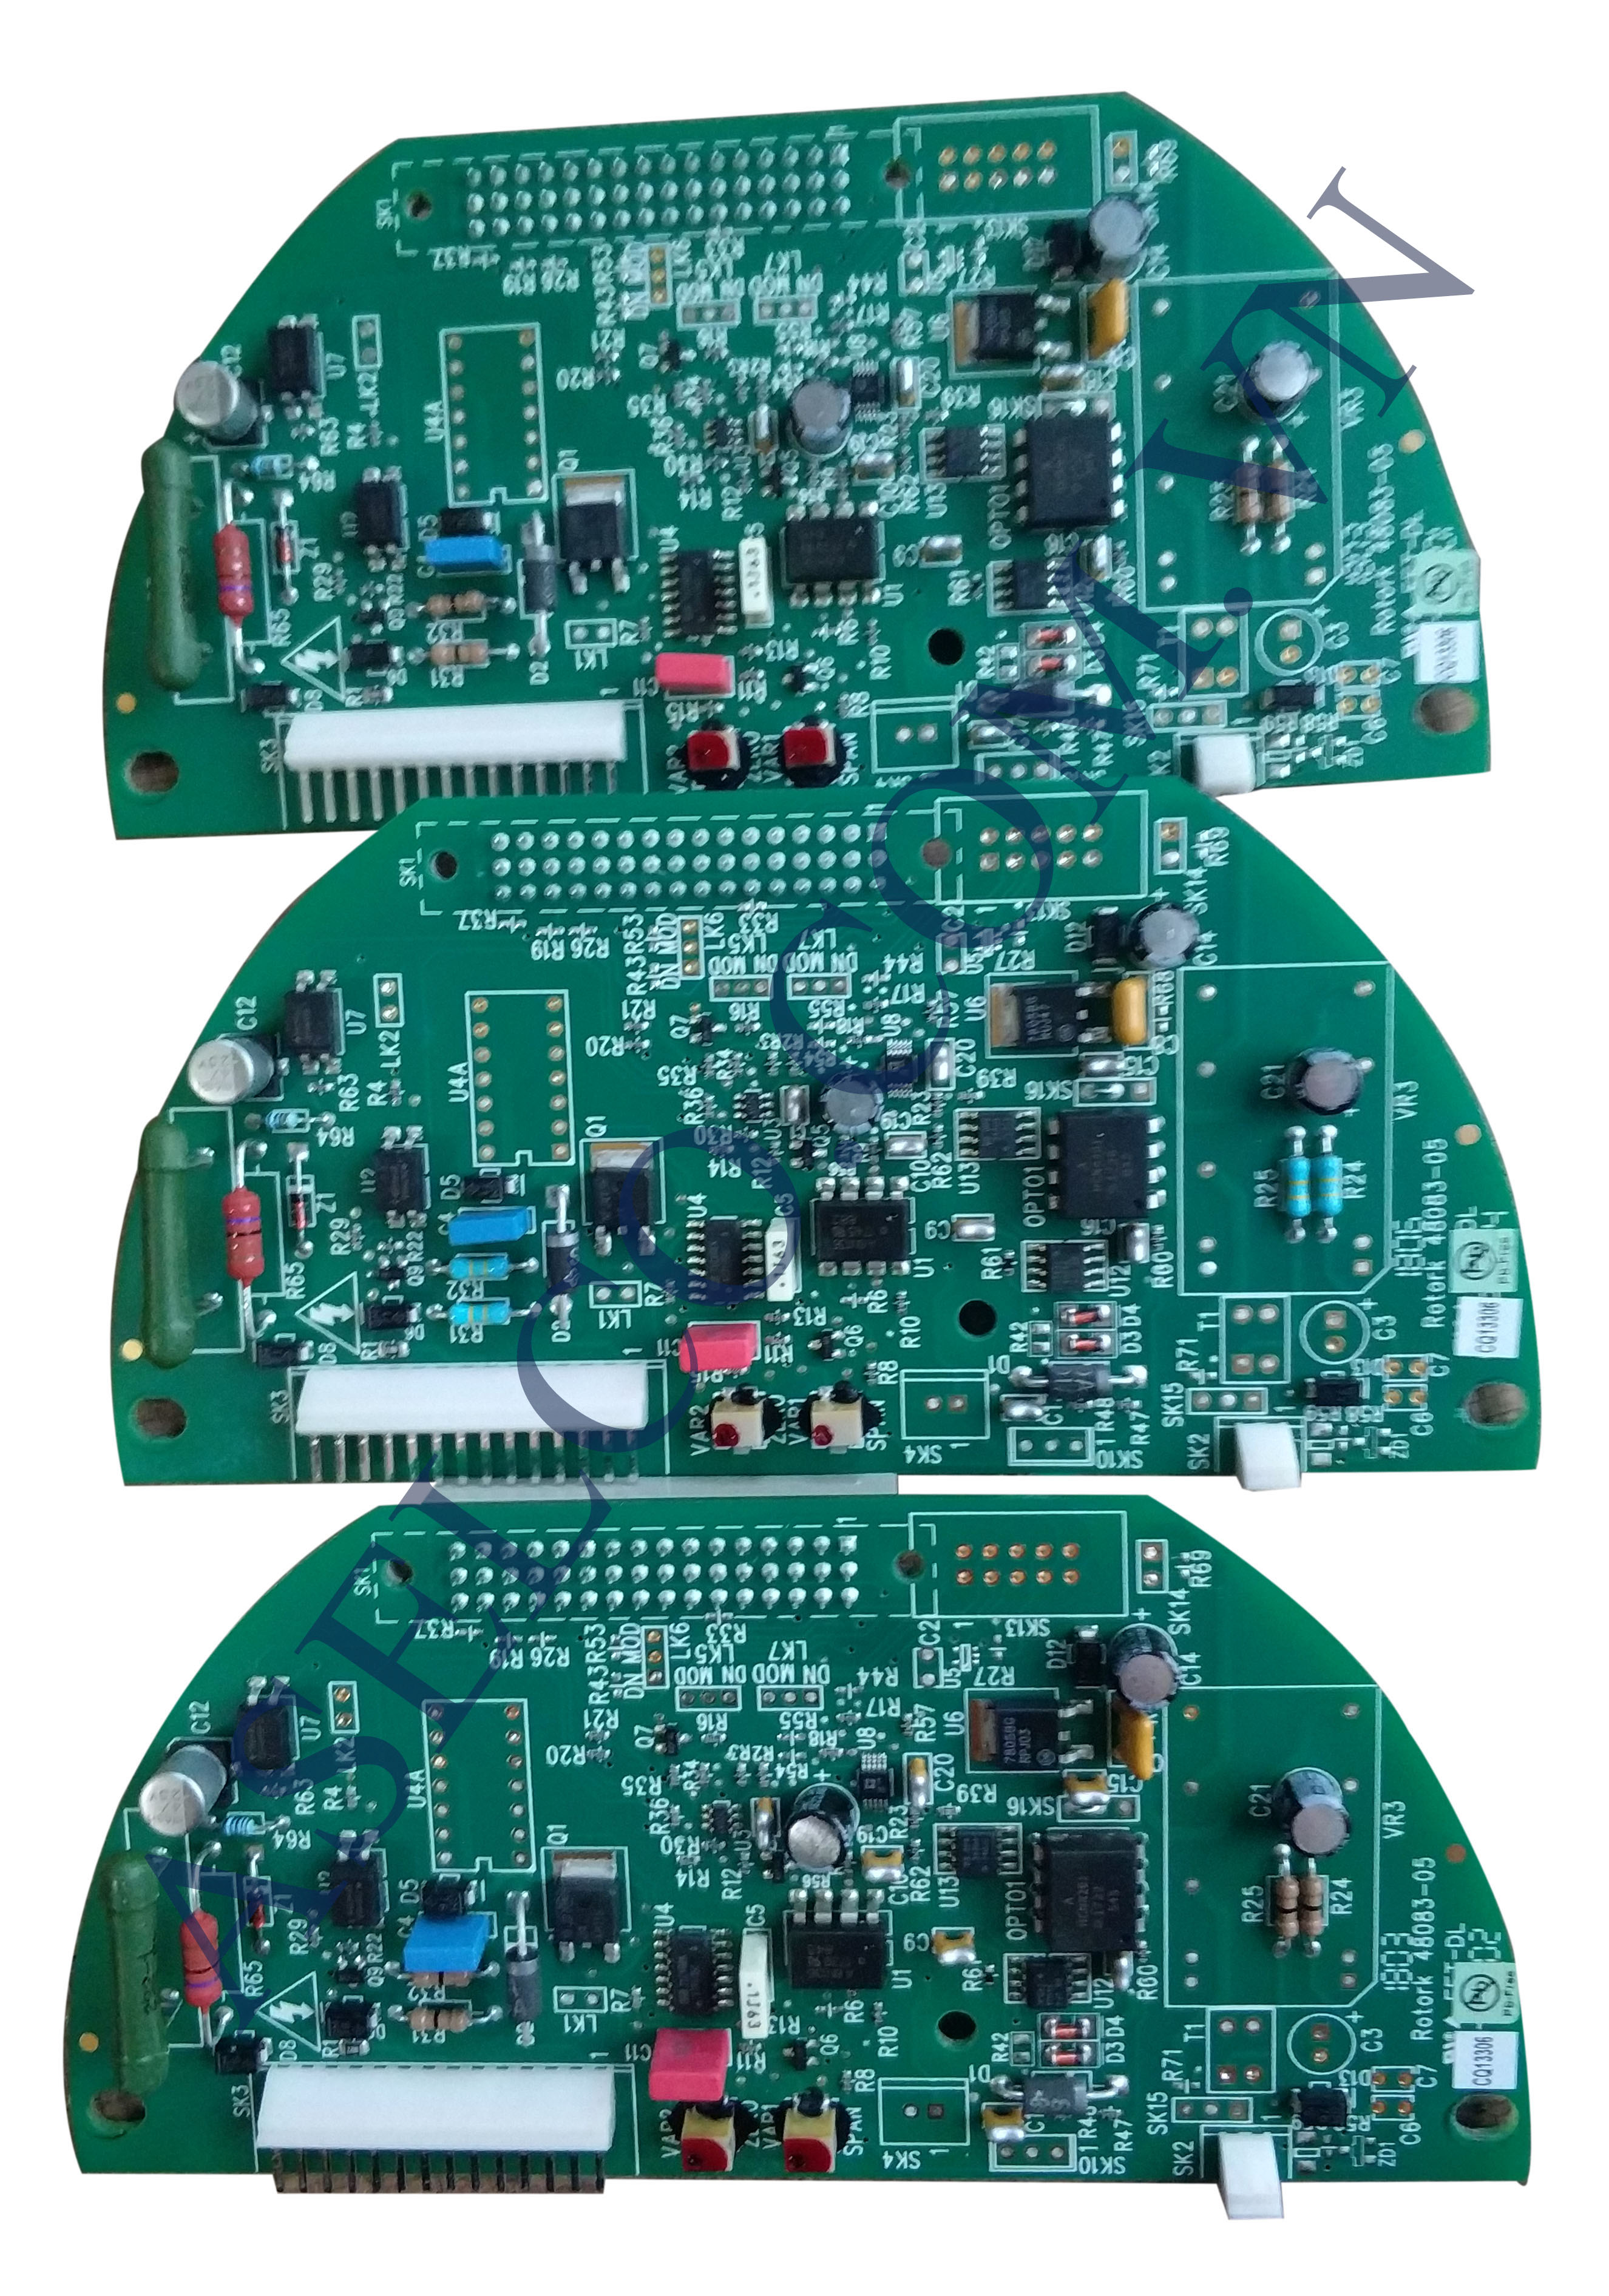 Boards for Rotork actuators